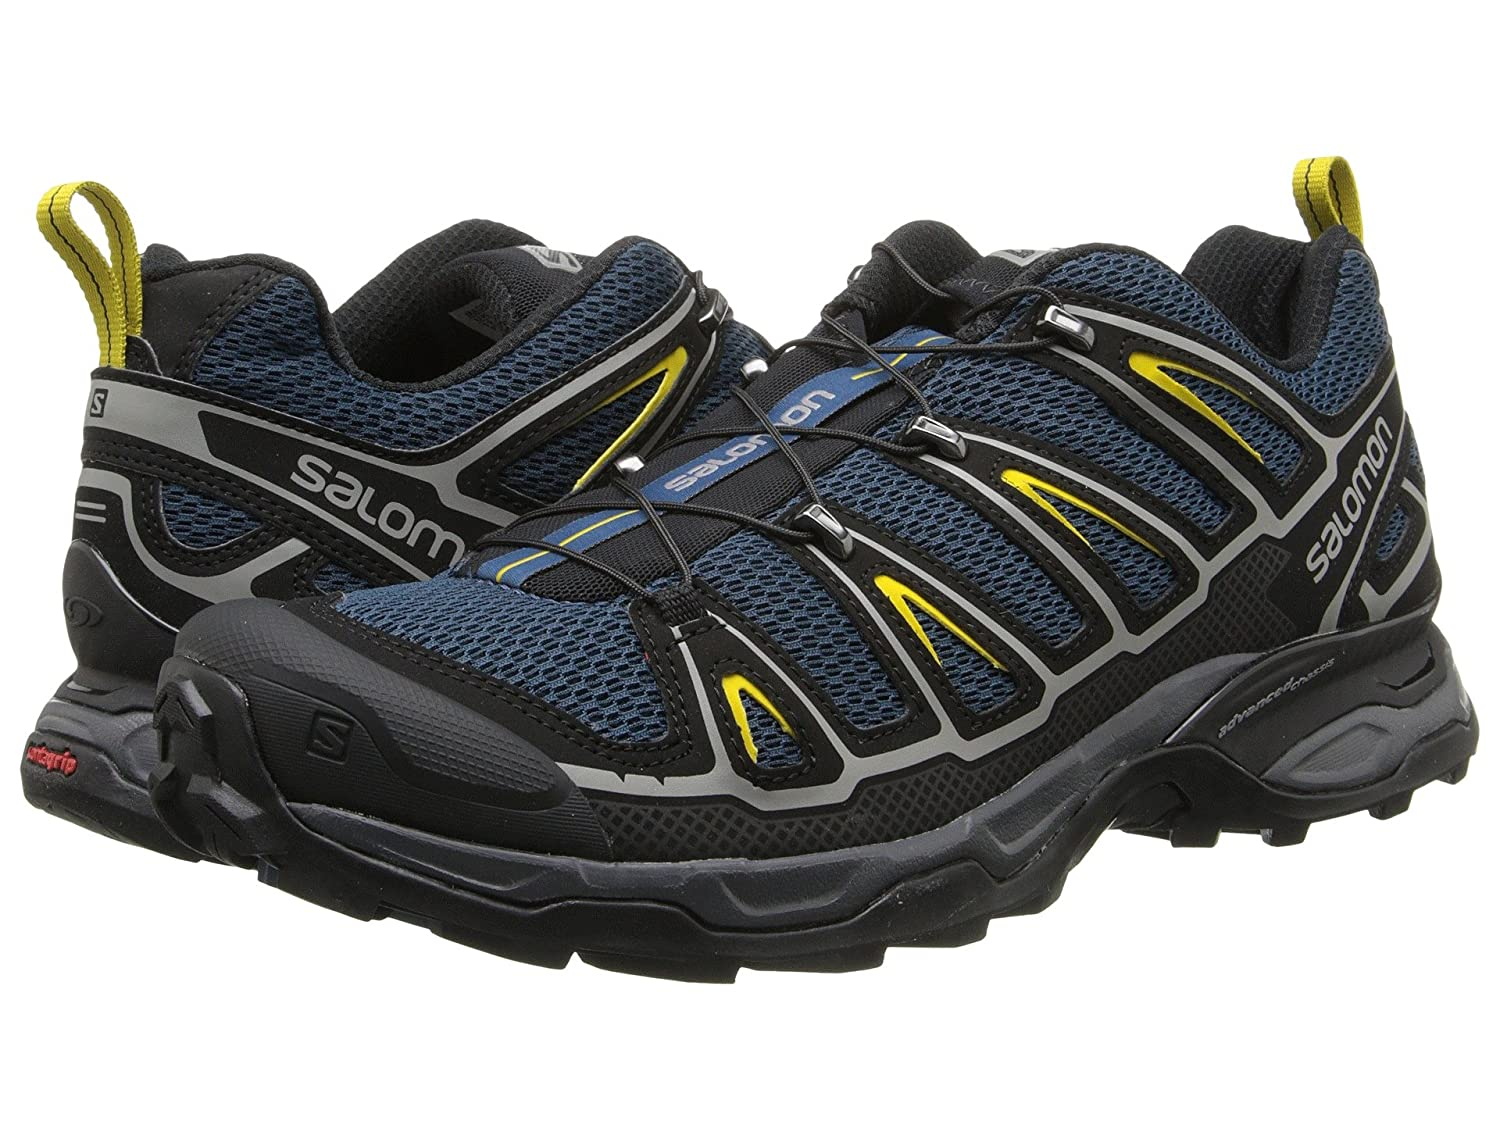 Salomon Men's X Ultra 2 Hiking Shoe Salomon Footwear X ULTRA 2-M